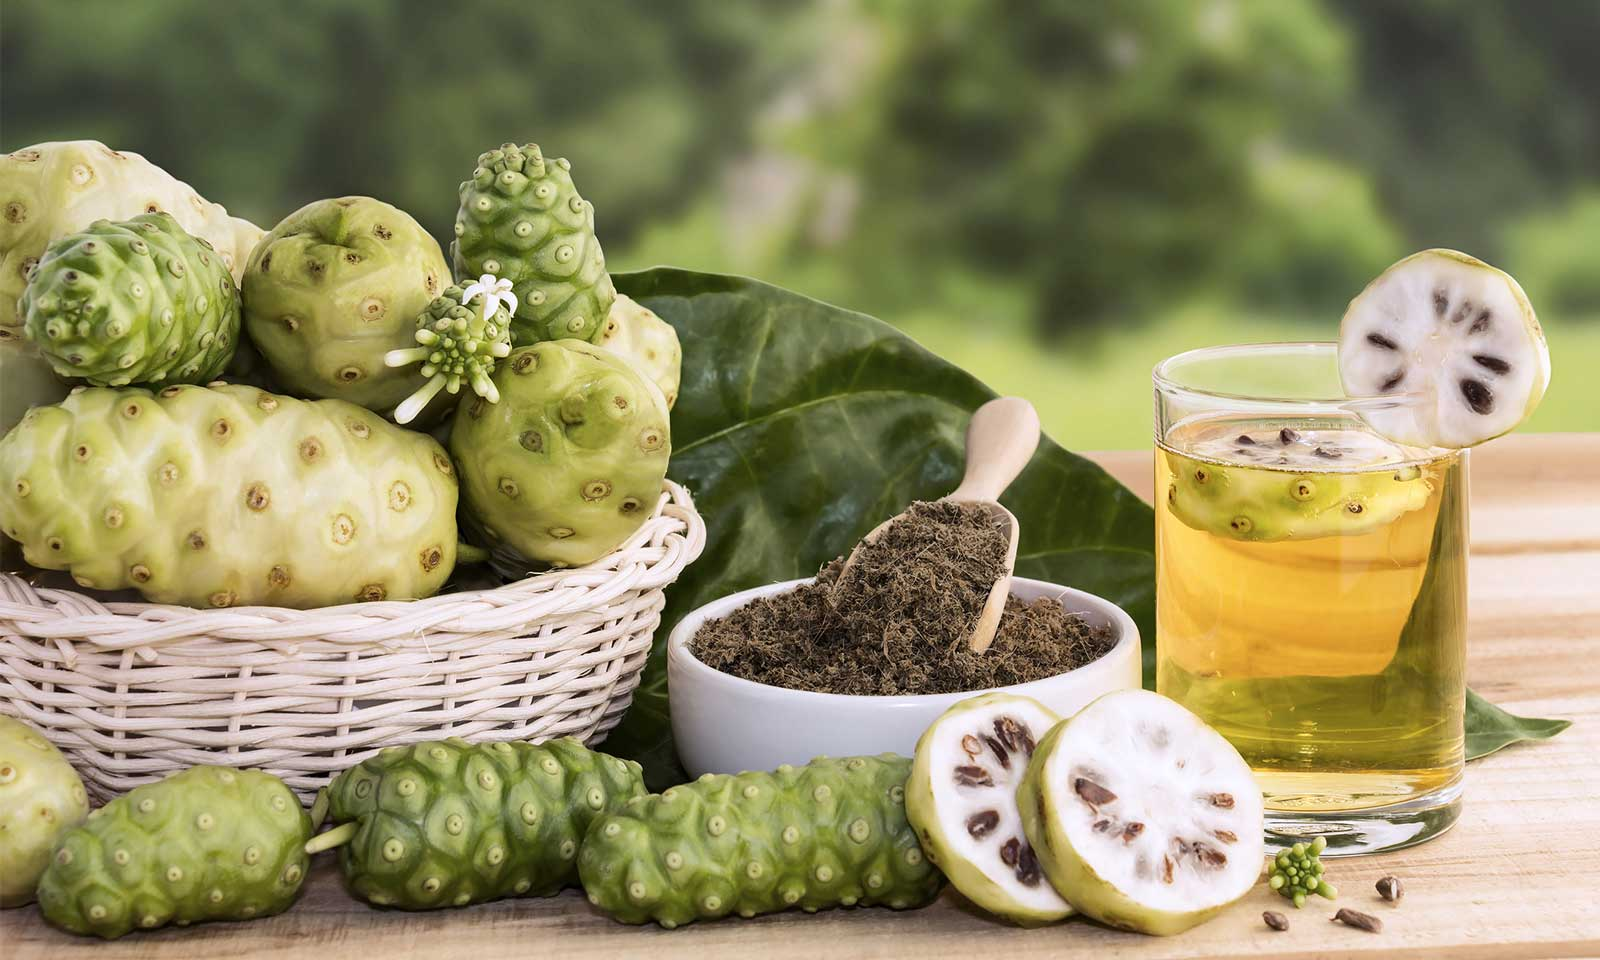 Light green Hawaiian Noni fruit in a basket with Noni leaf next to a glass of healing Noni juice at the Institute of Awareness & Movement.